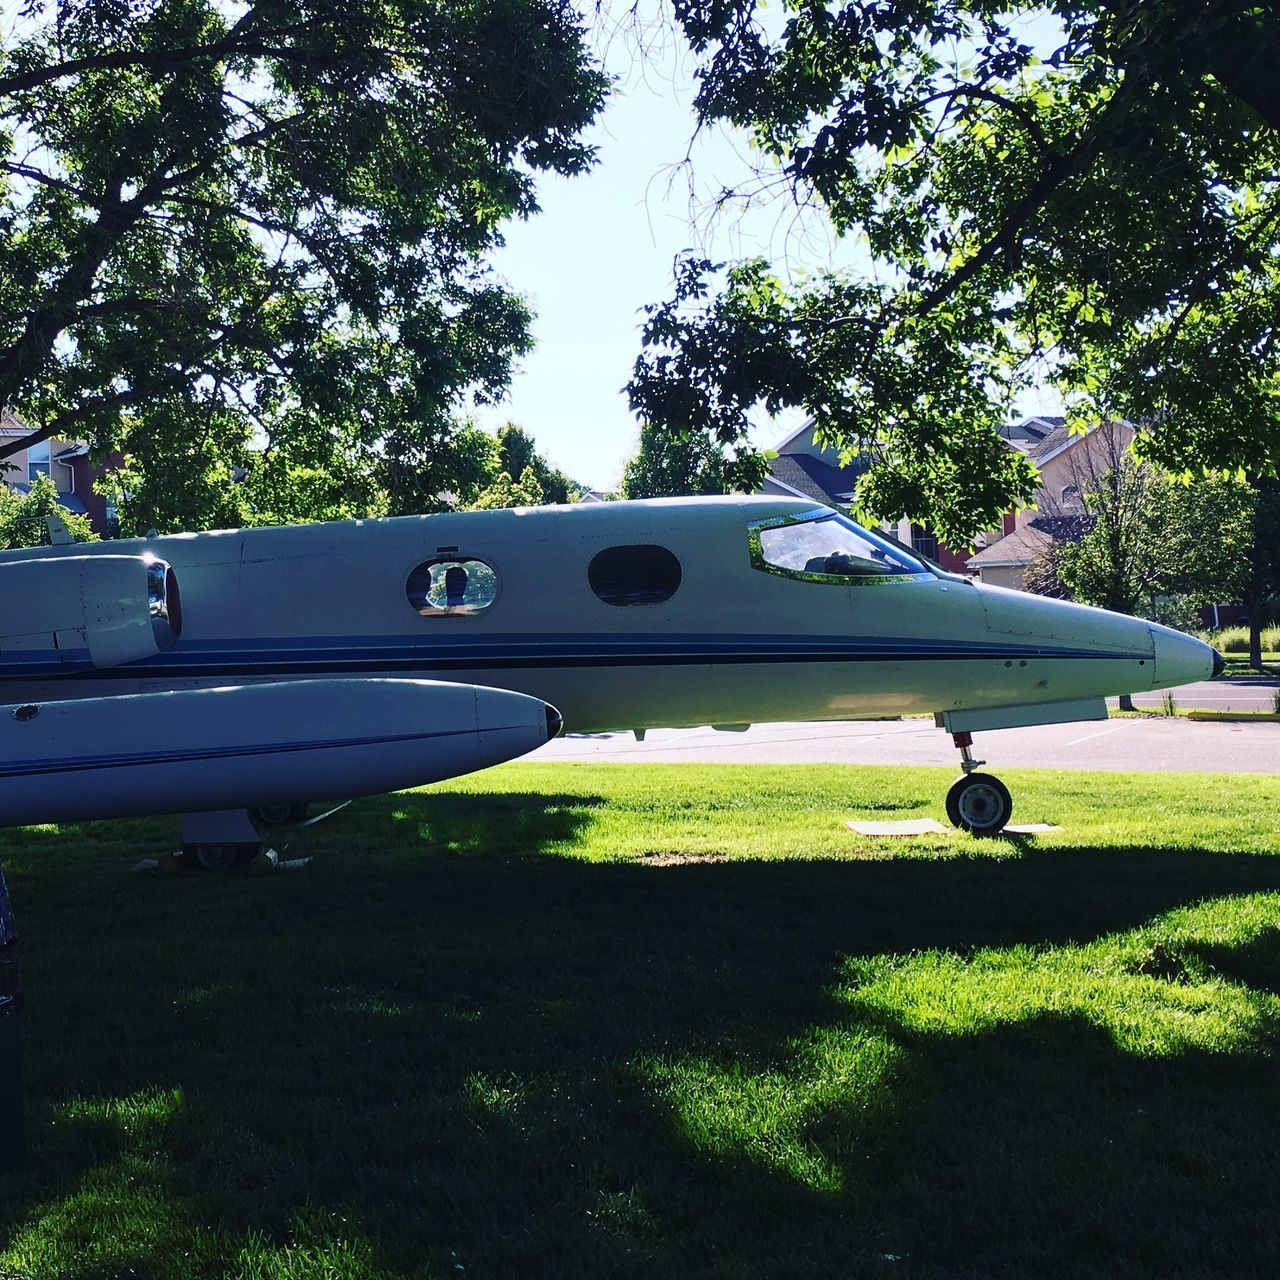 tree, grass, airplane, transportation, day, air vehicle, mode of transport, outdoors, no people, green color, nature, sky